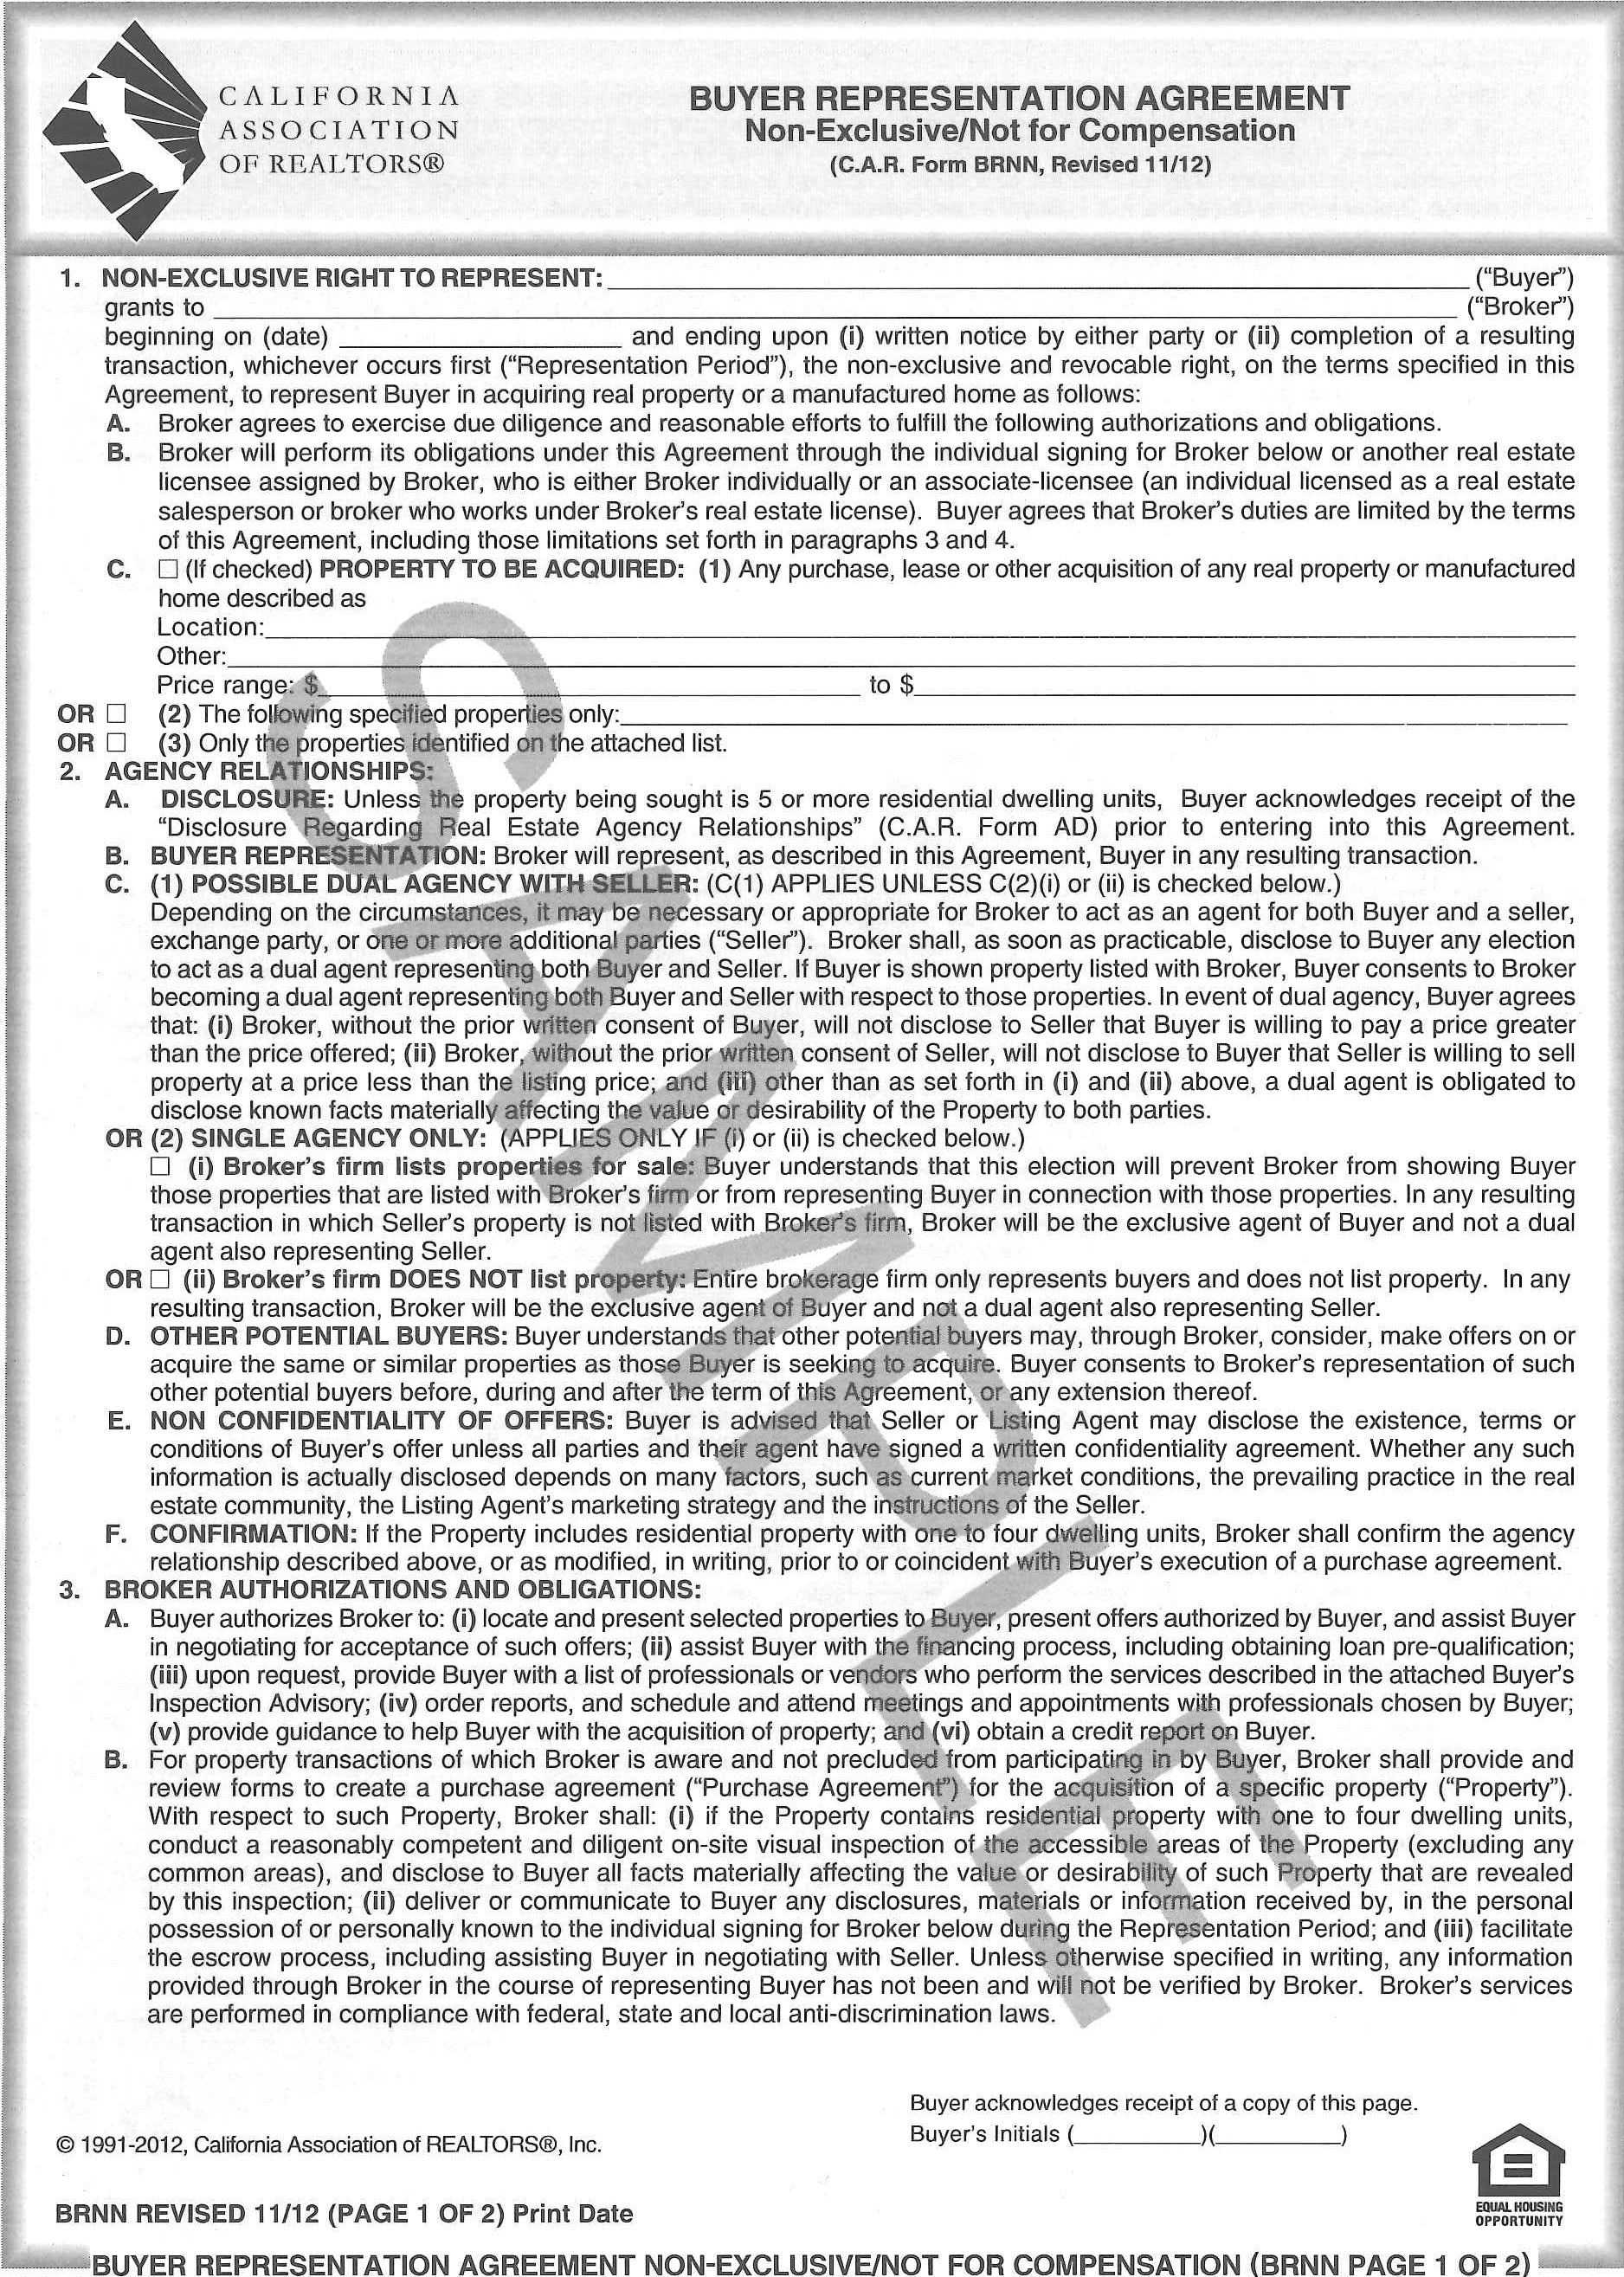 Form Brnn Buyer Representation Agreement Non Exclusive Not For Compensation Single